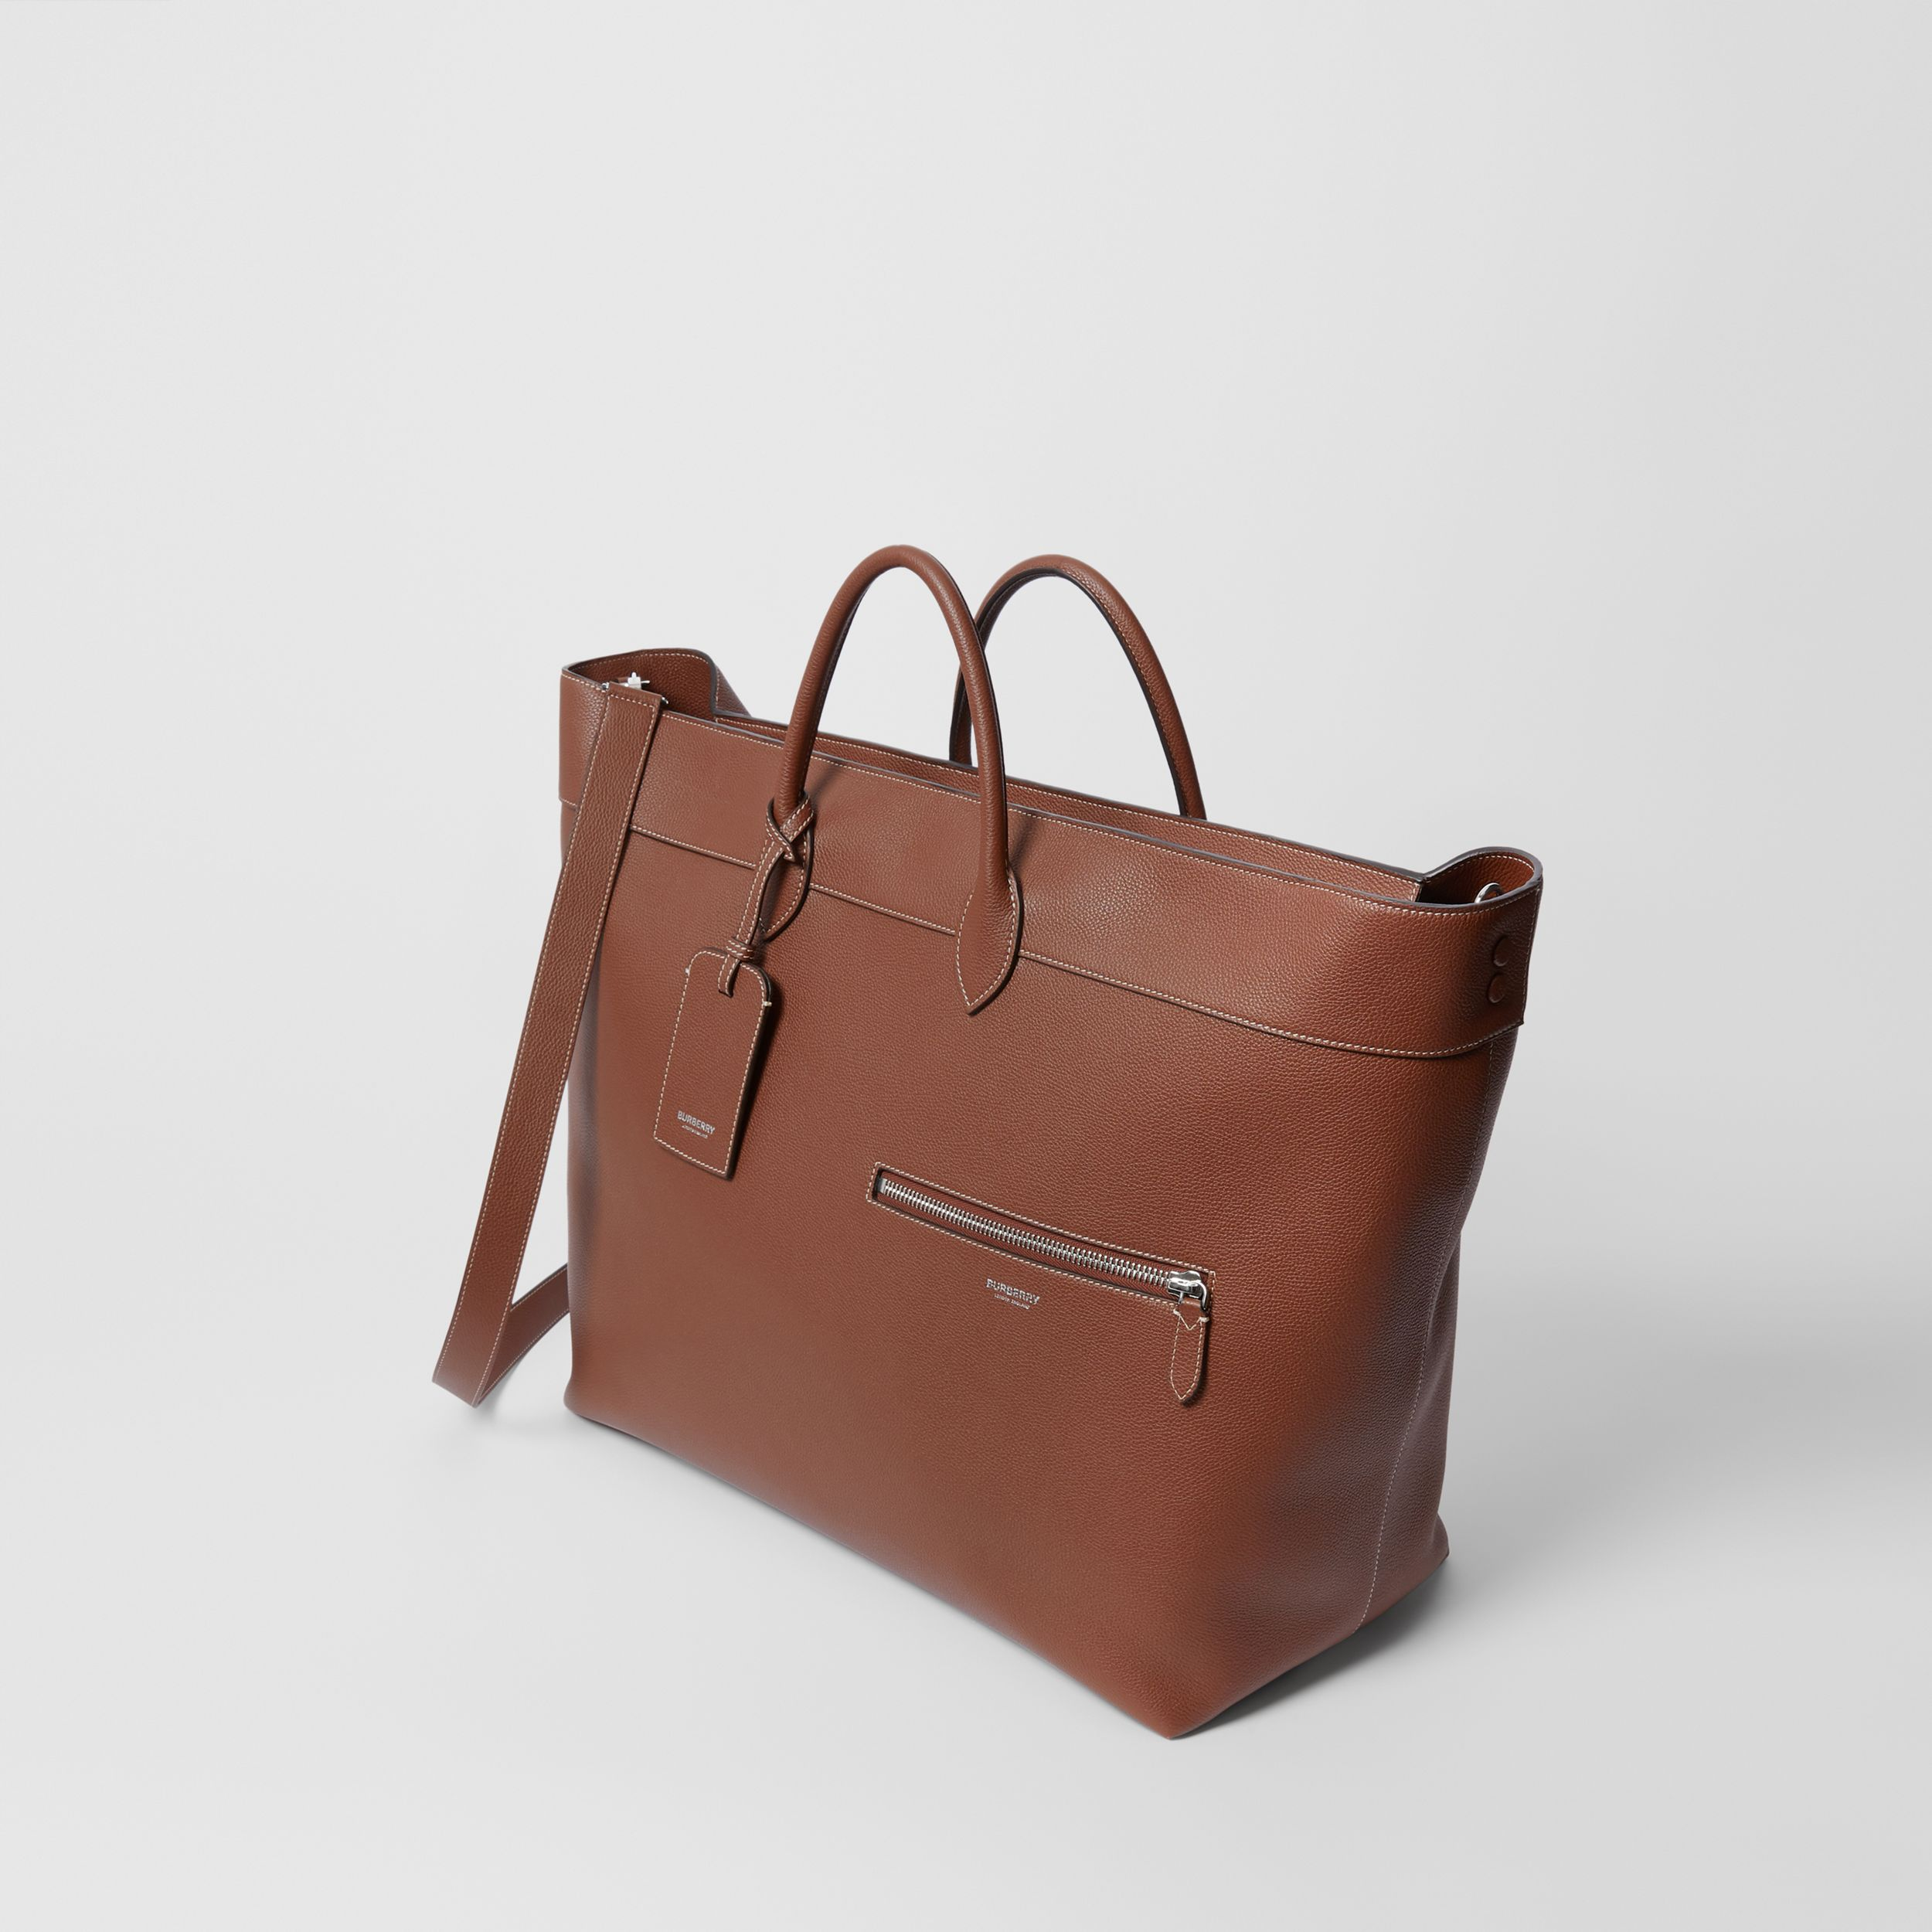 Grainy Leather Holdall in Tan - Men | Burberry - 4